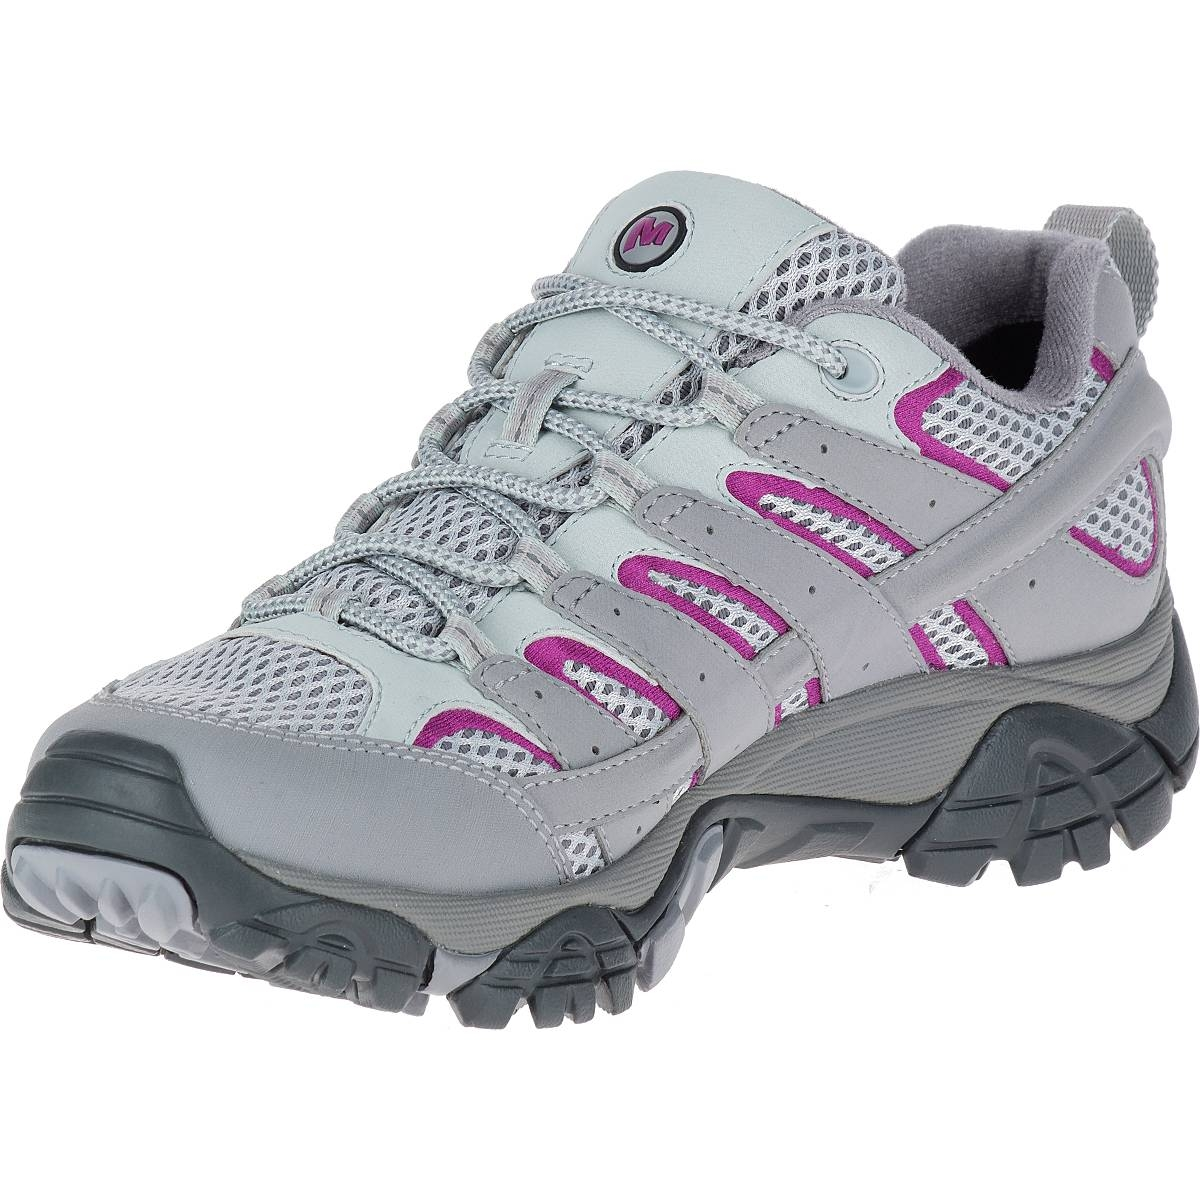 82a3d2bfce19b ... Image of Merrell Moab 2 GTX Walking Shoes (Women's) - Frost Grey ...